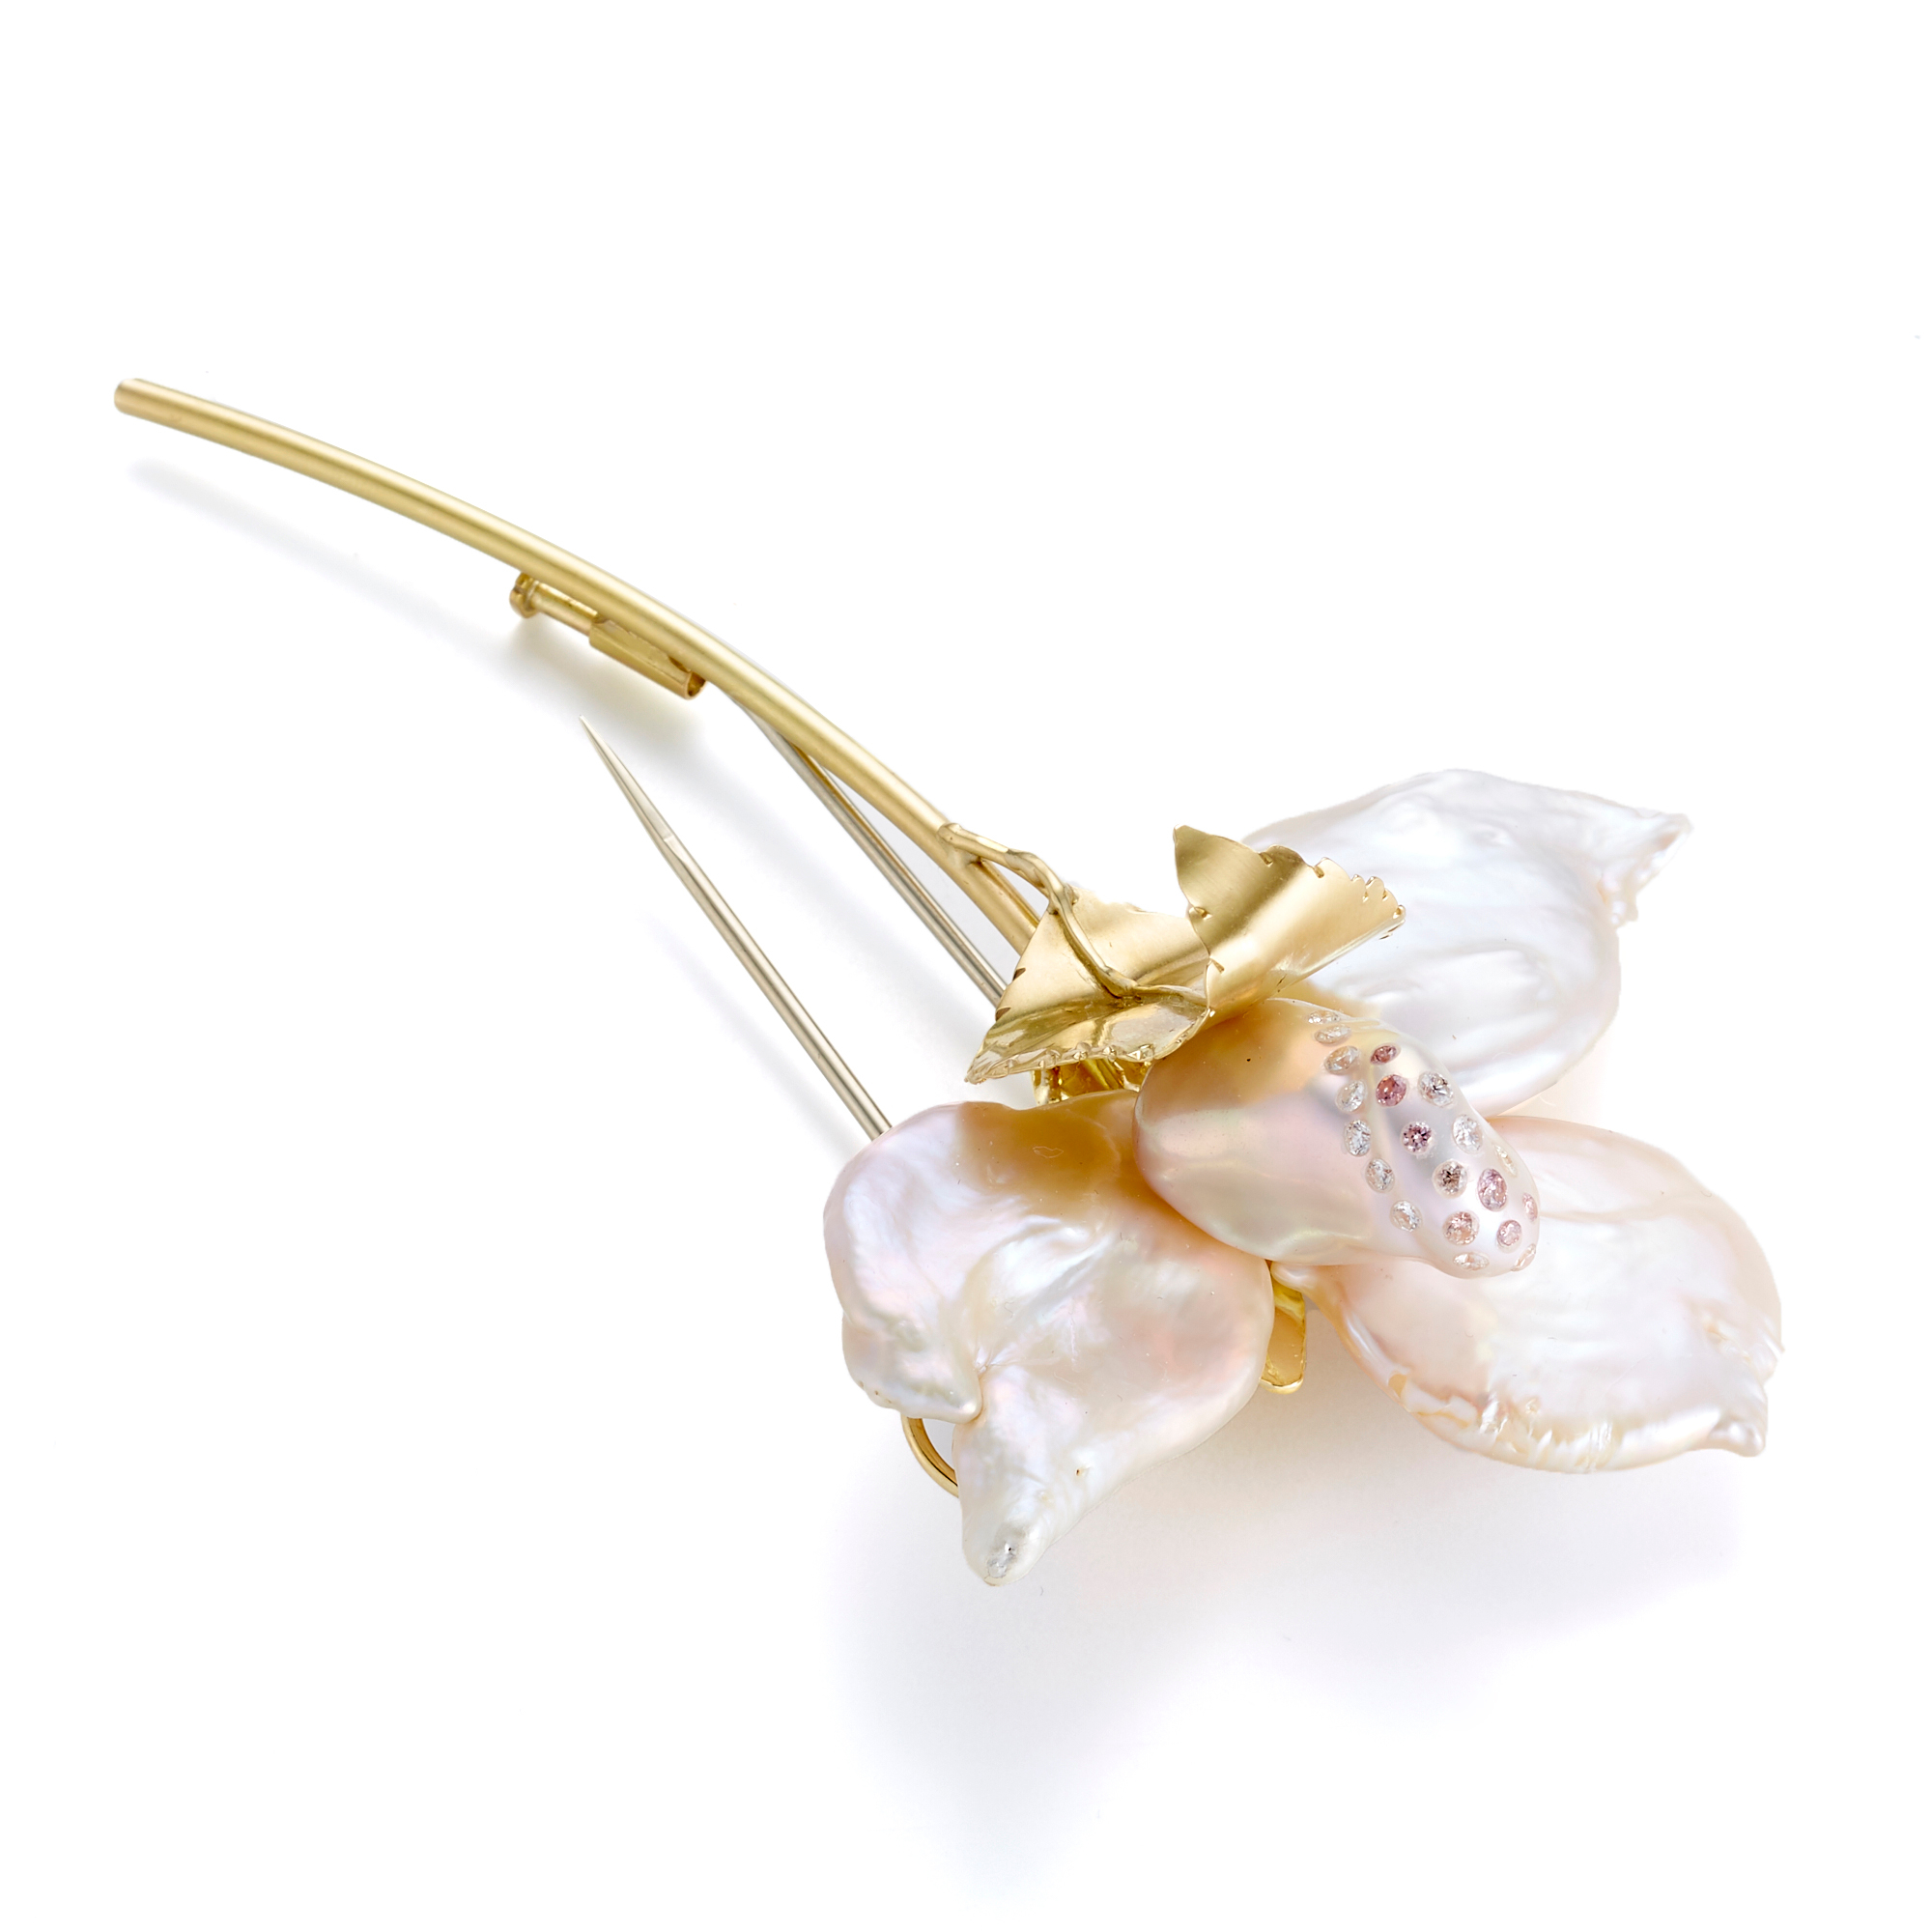 Russell Trusso Baroque Pearl Flower Stem Brooch